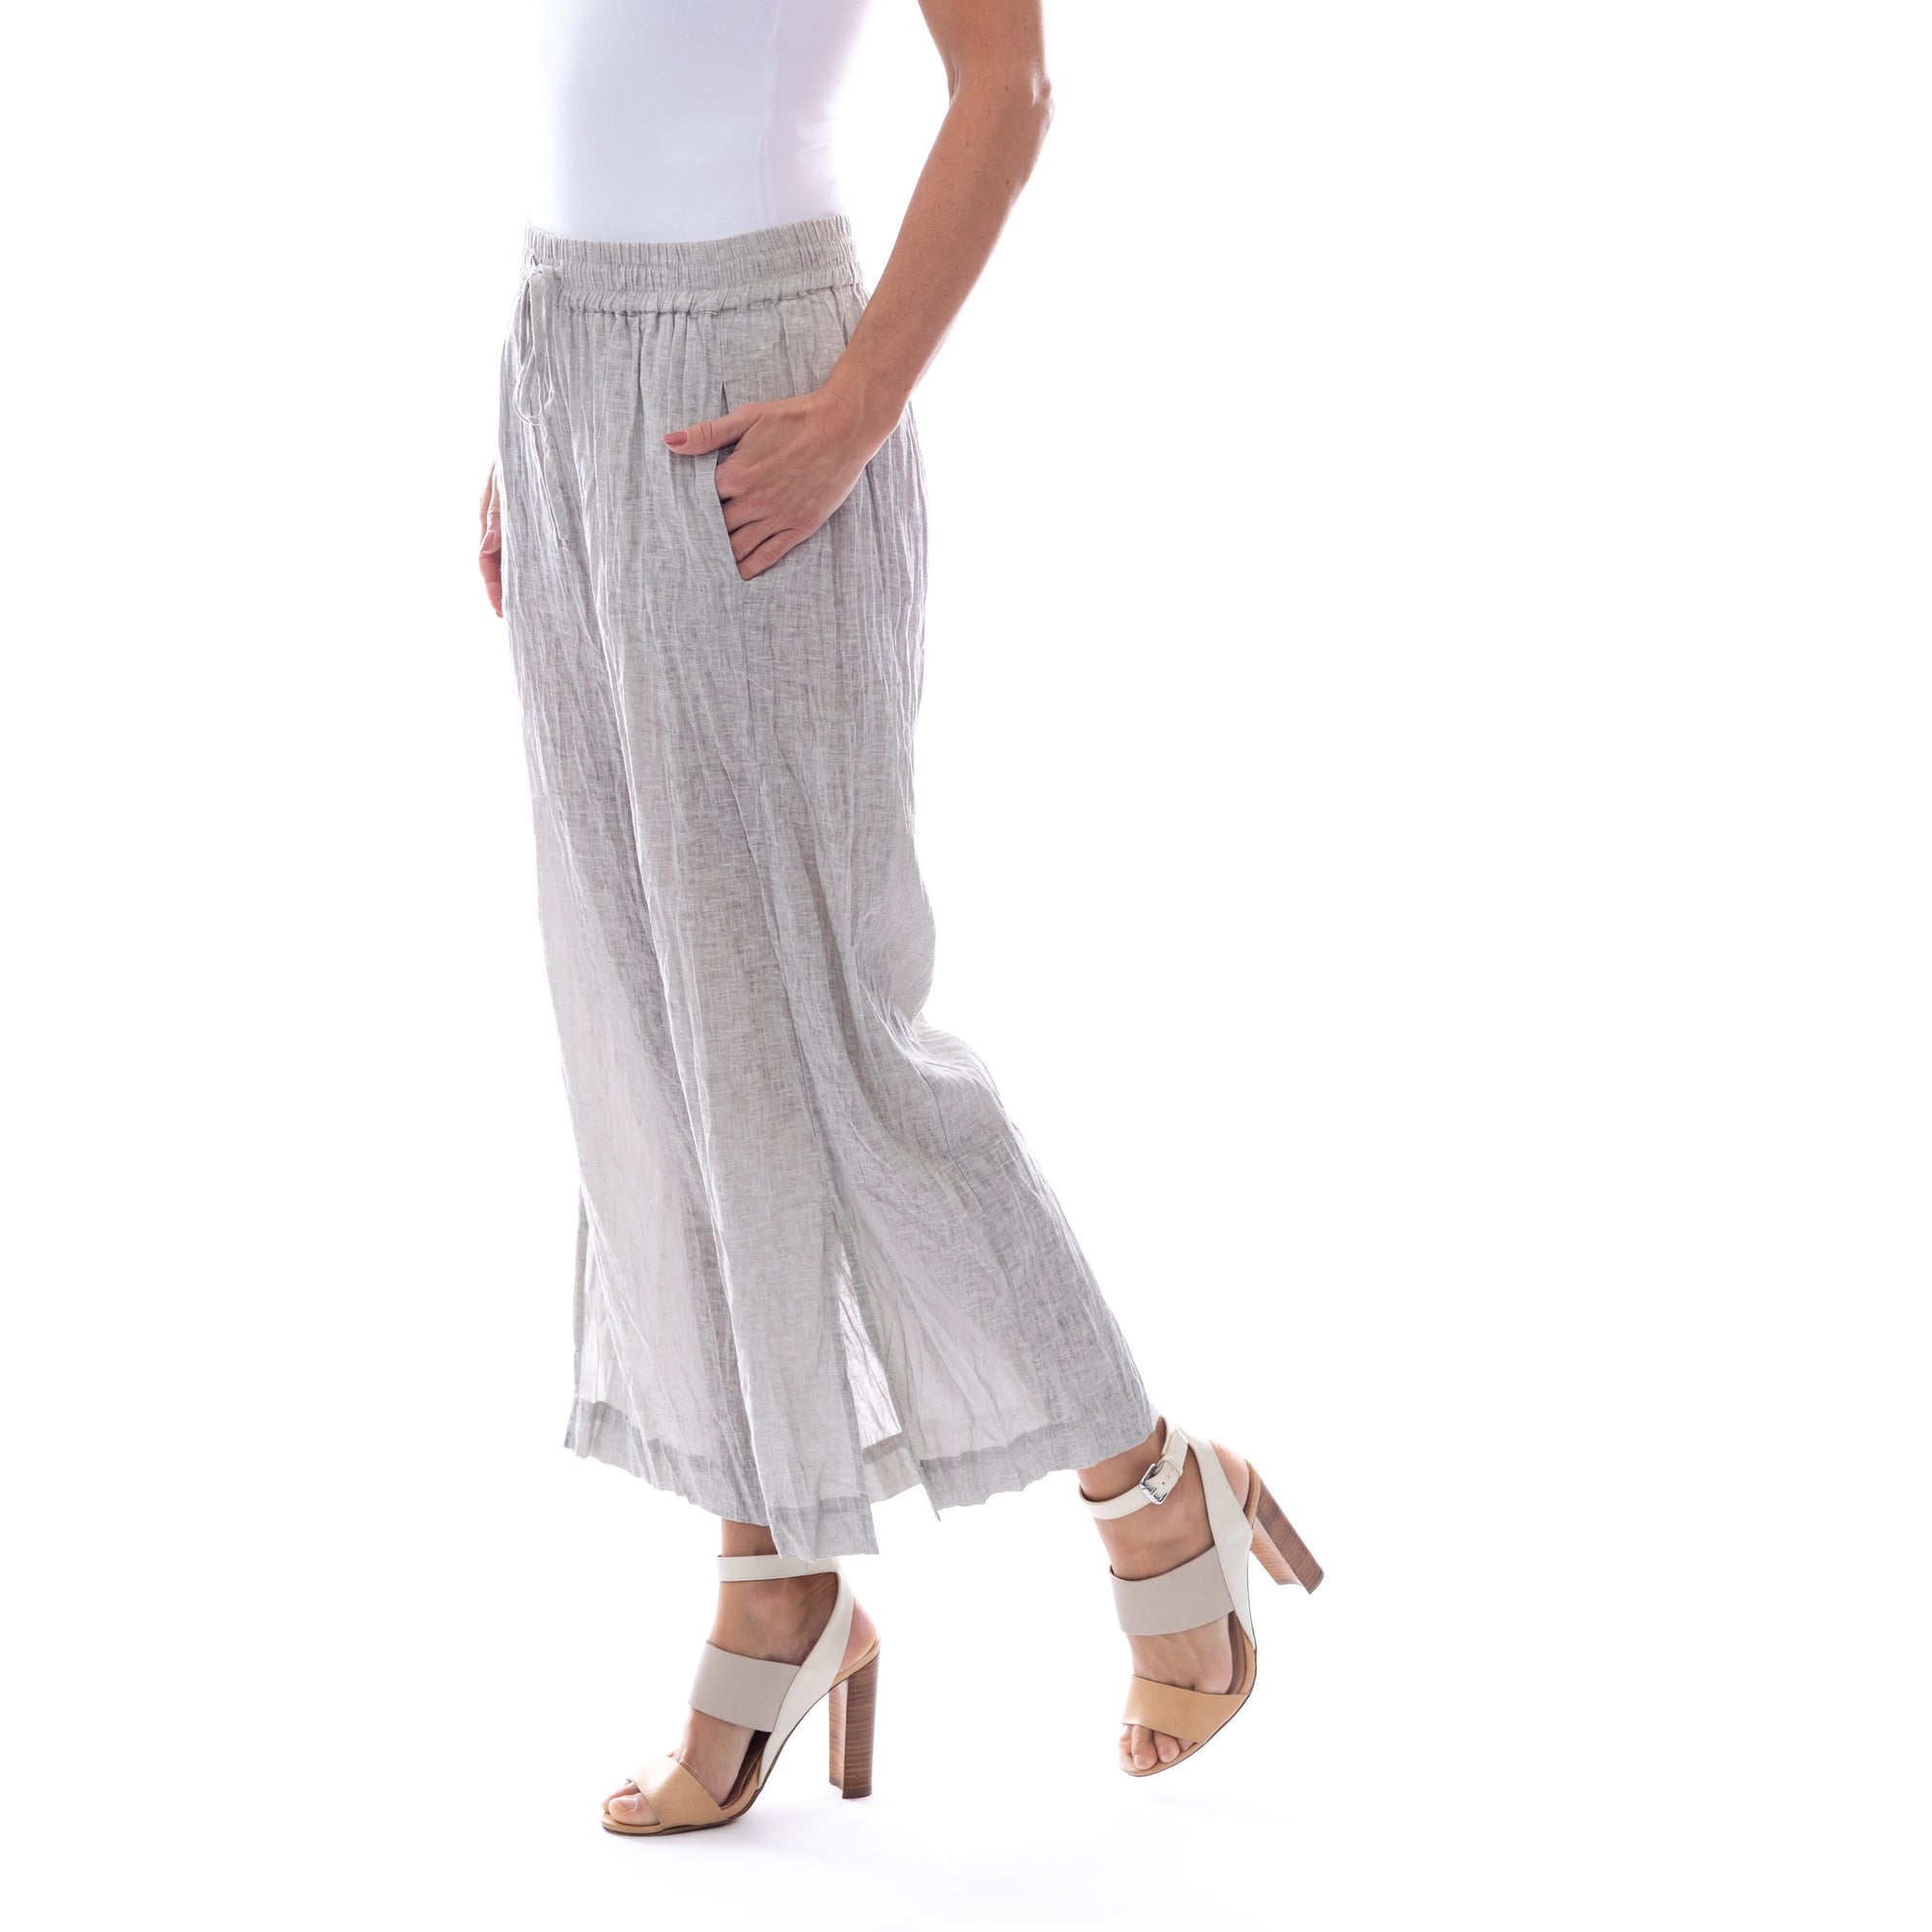 Sequel by Cafe Latte pant in Natural Plain